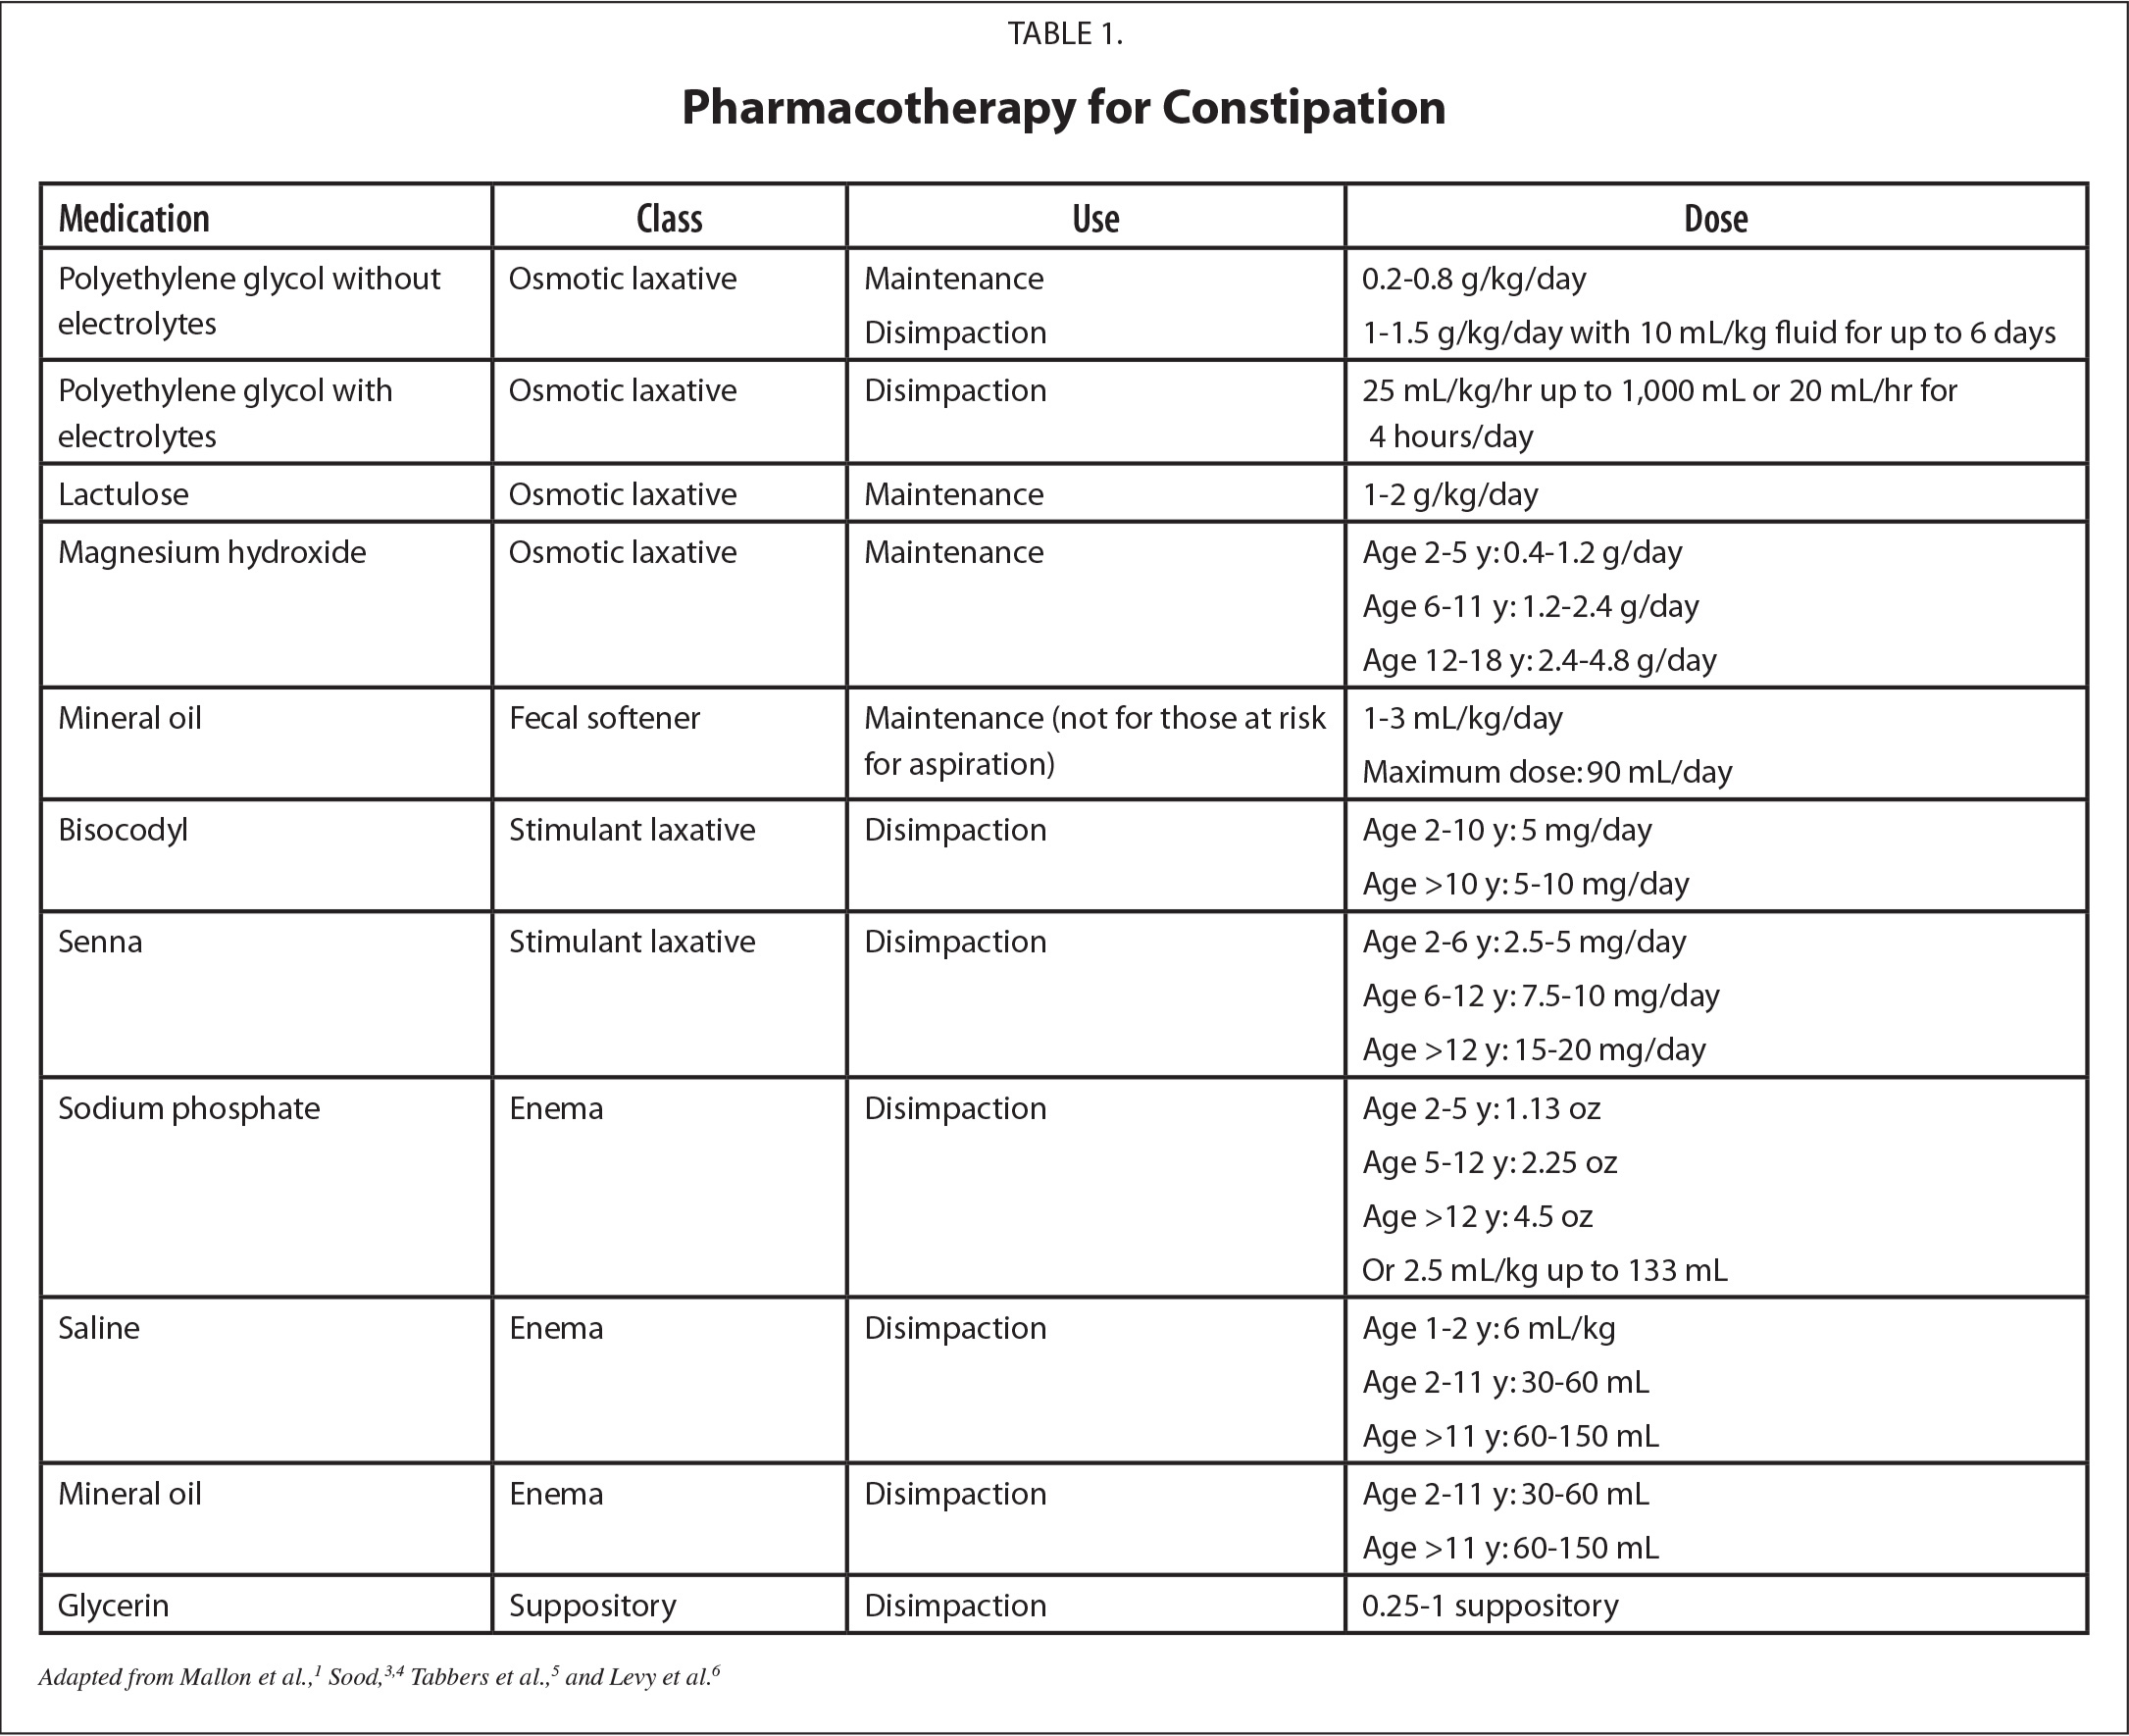 Pharmacotherapy for Constipation